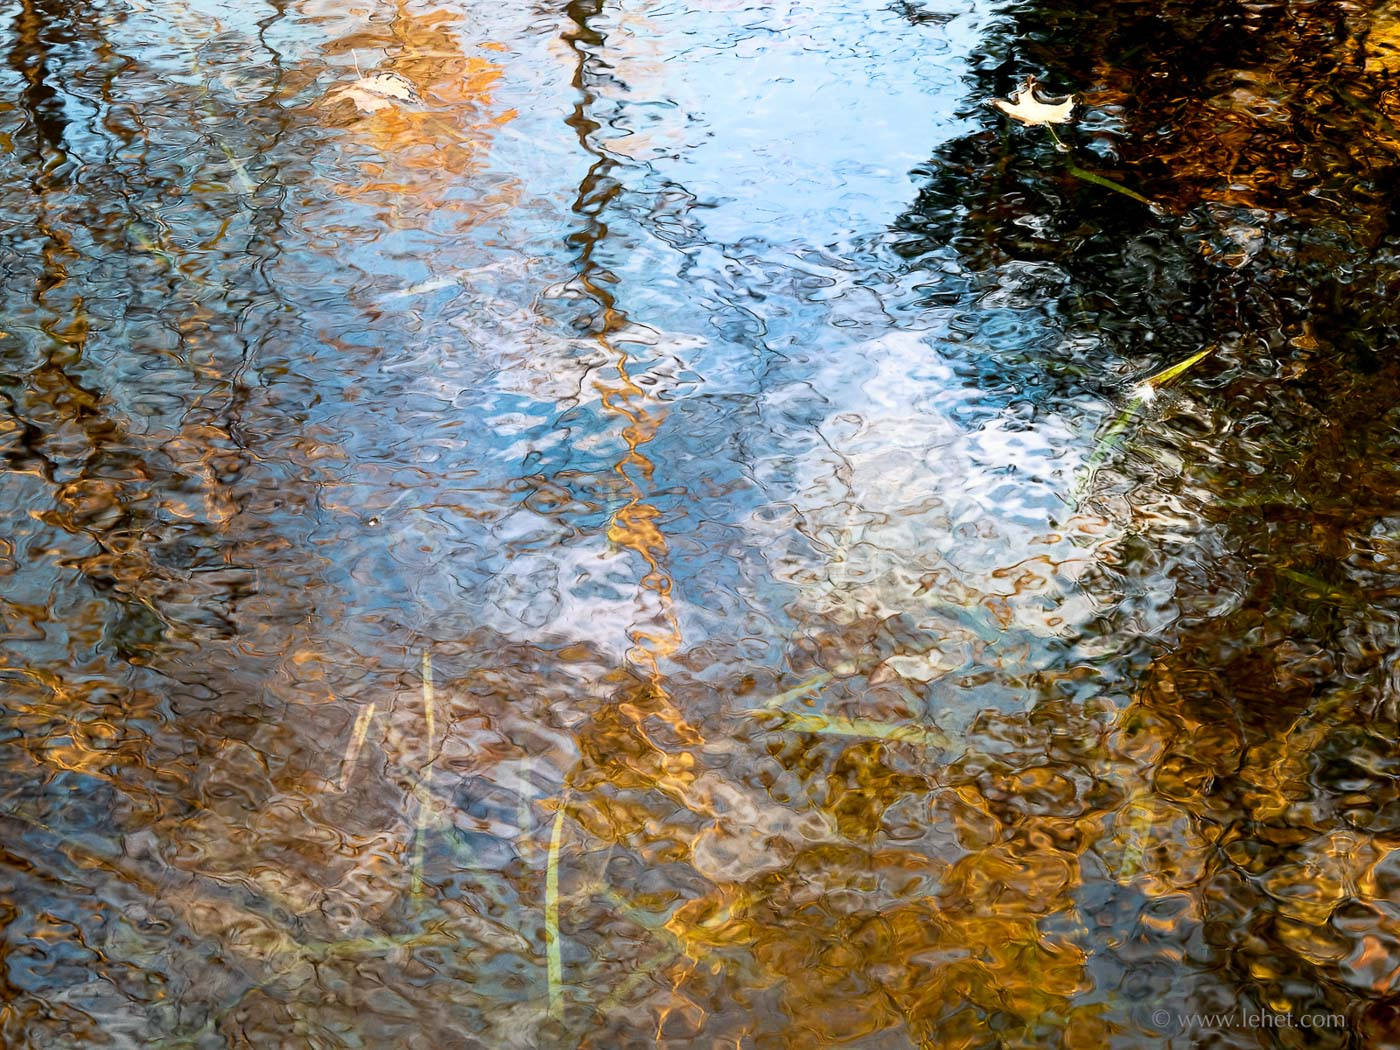 two maple leaves in pond, water weeds, foliage and sky reflections